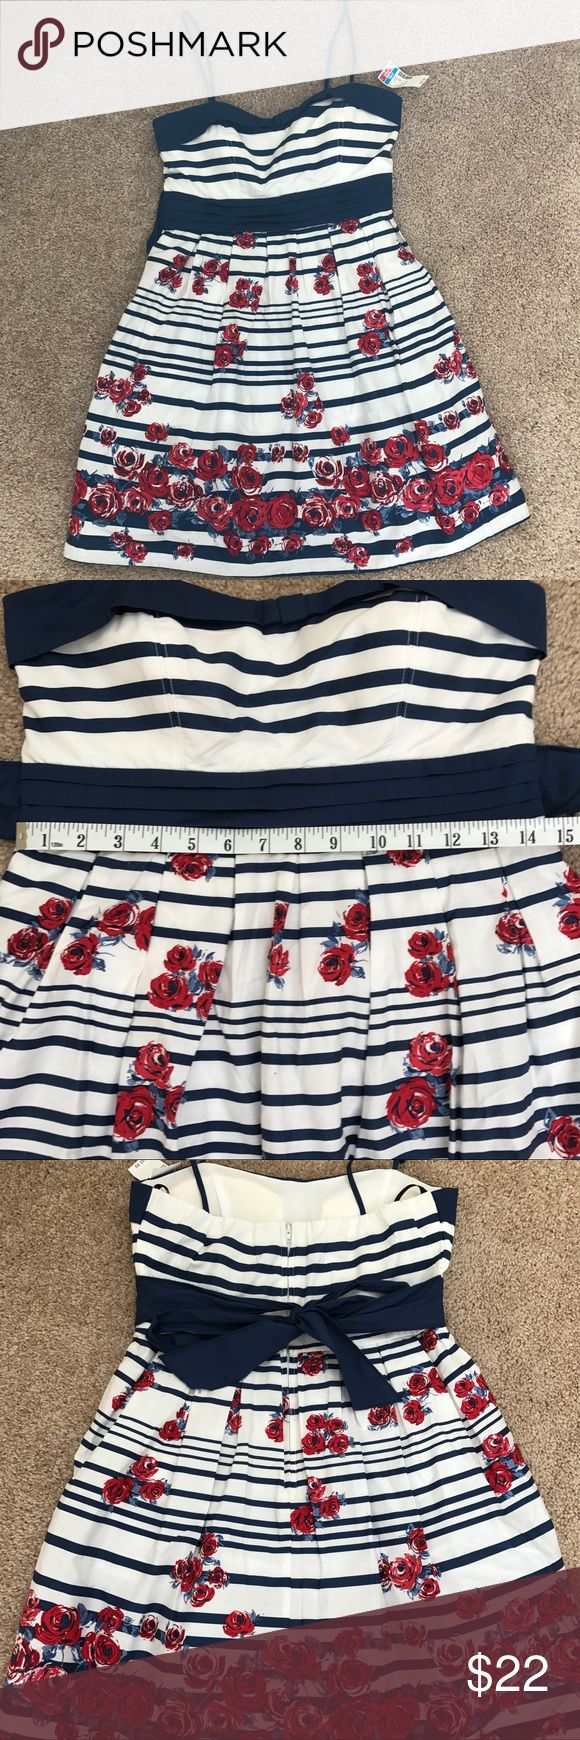 Nautical Rose Party dress Adorable spaghetti strap blue and white dress with roses. Bow tie around the back along with zipper. New with tags! Would be super cute for a wedding guest dress, or a less formal homecoming dress. Juniors size 9 City Triangles Dresses